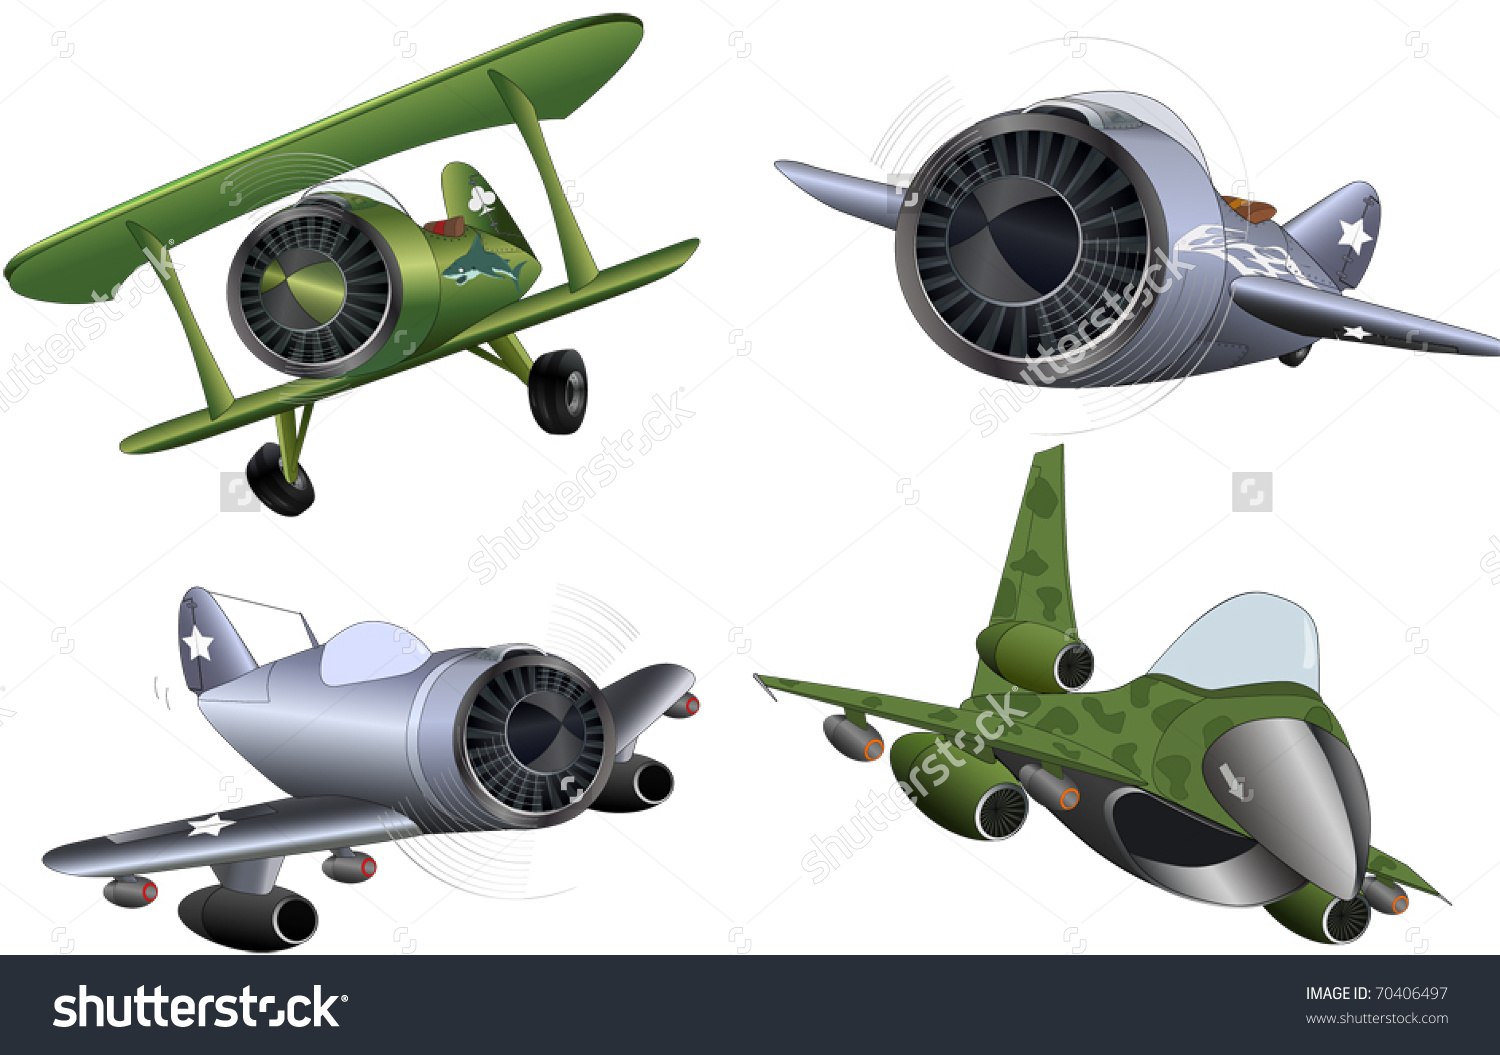 Military Planes Clip Art Stock Vector 70406497.